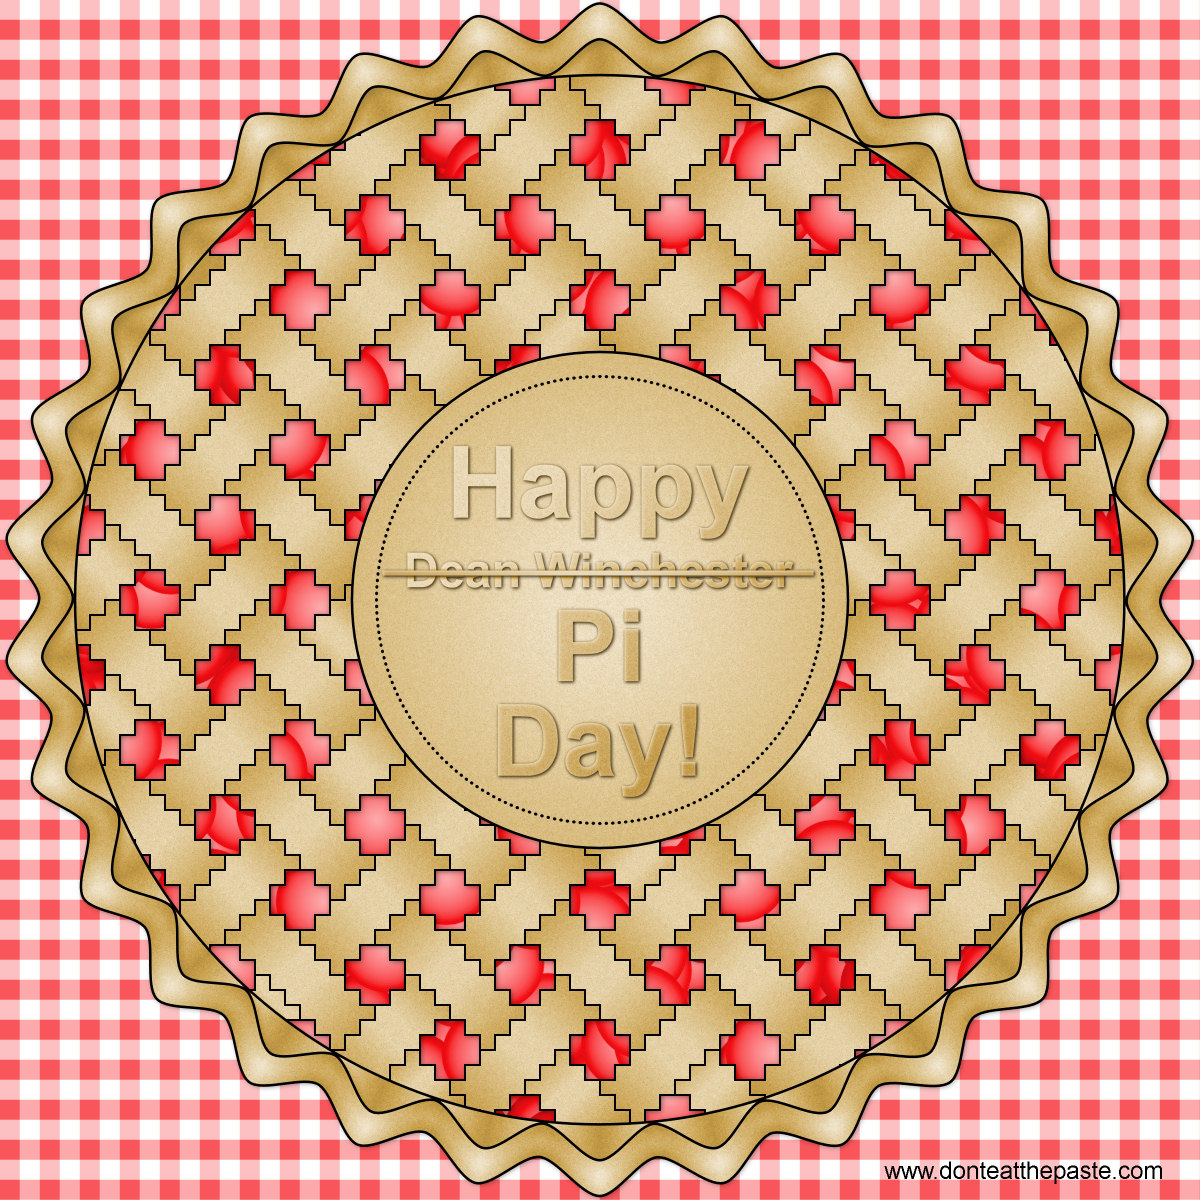 Happy Pi (or Dean Winchester) Day